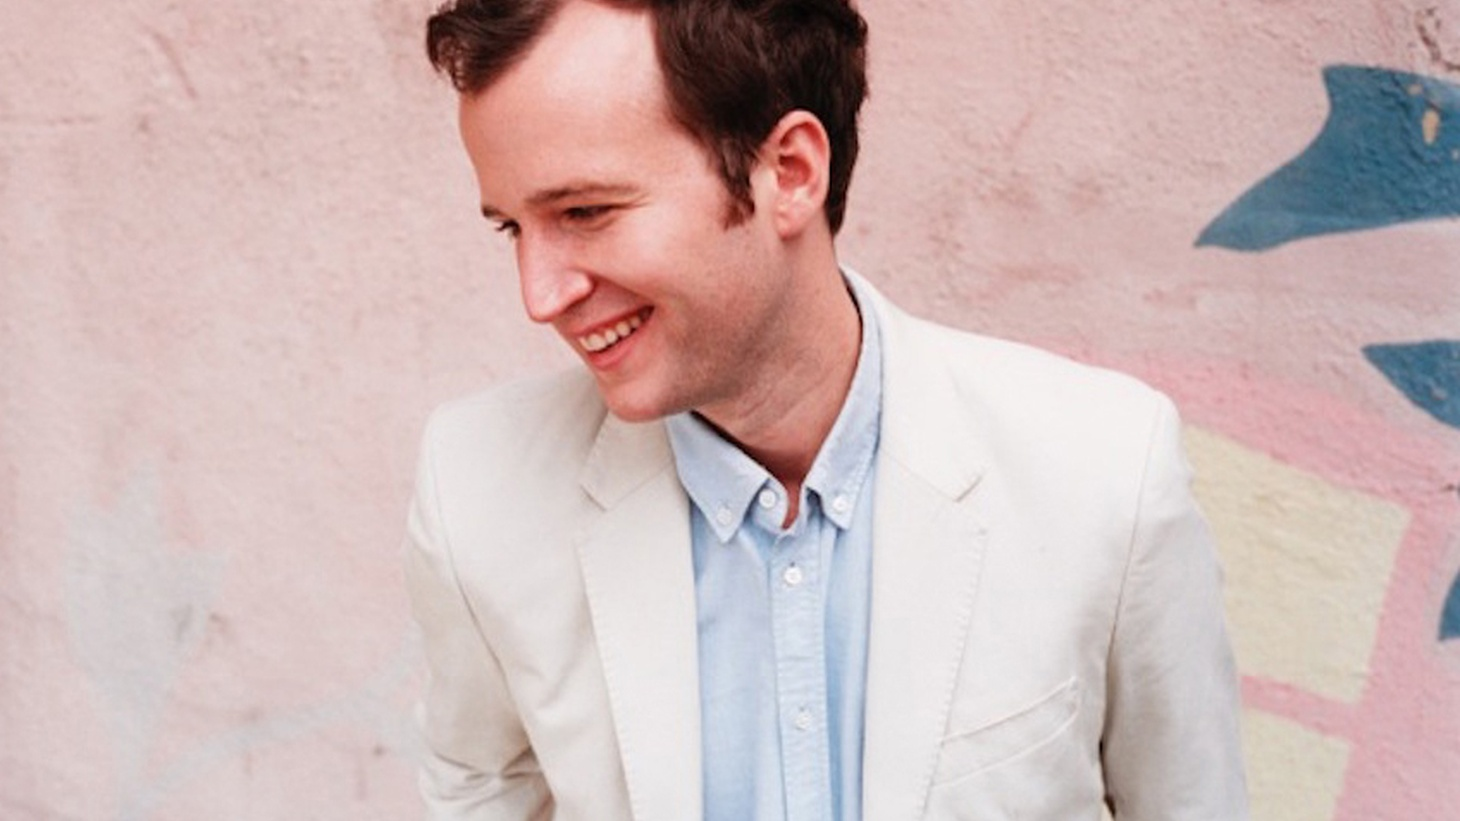 Vampire Weekend's Chris Baio strikes out on his own with a new solo album called The Names, due out later this summer.